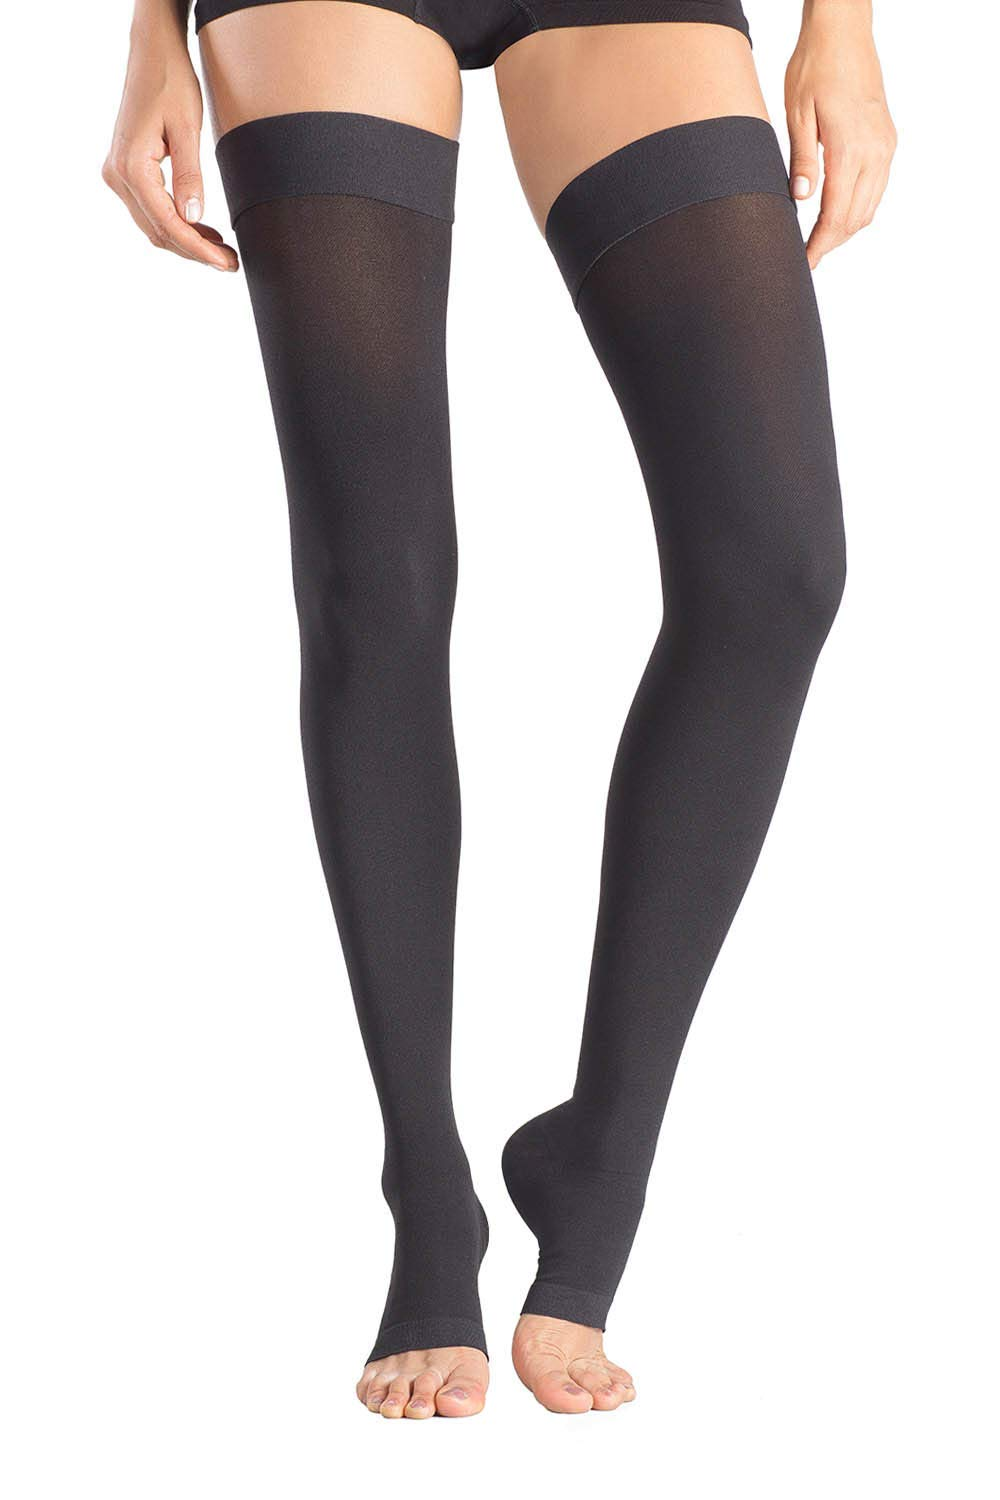 a647d462b23390 MD Thigh High Microfiber Opaque Compression Stockings Open-Toe Firm Support  23-32mmHg for